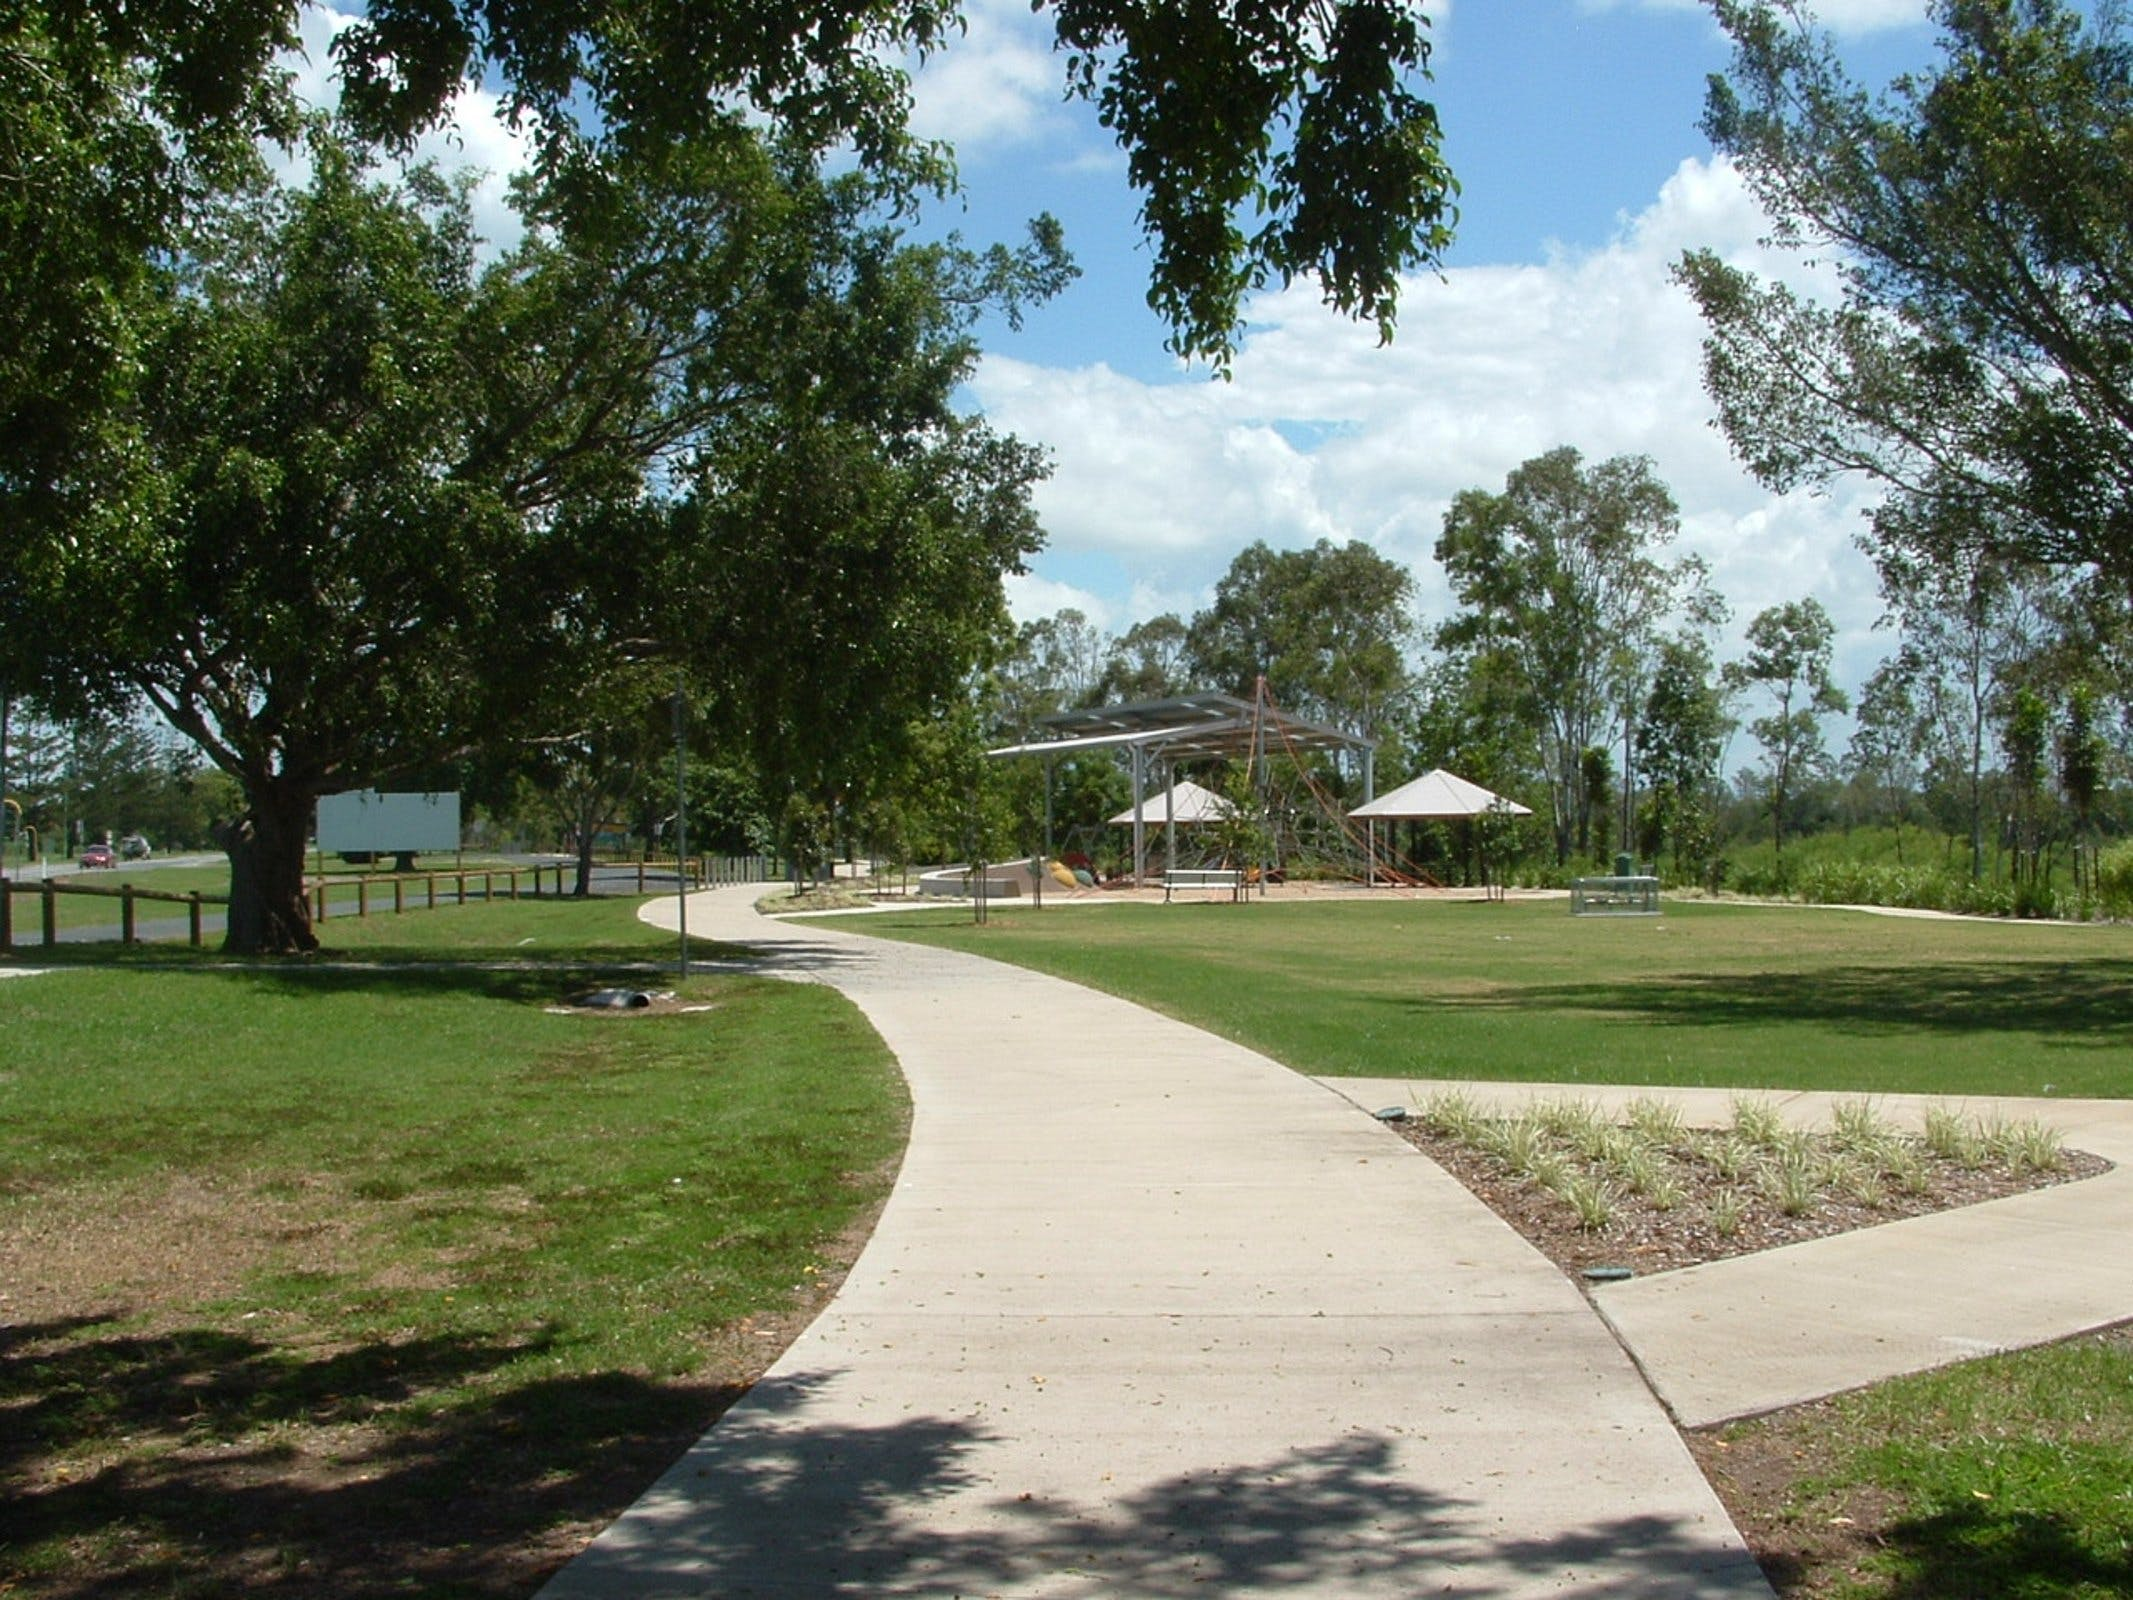 Edward Lloyd Park Marian - Accommodation Kalgoorlie